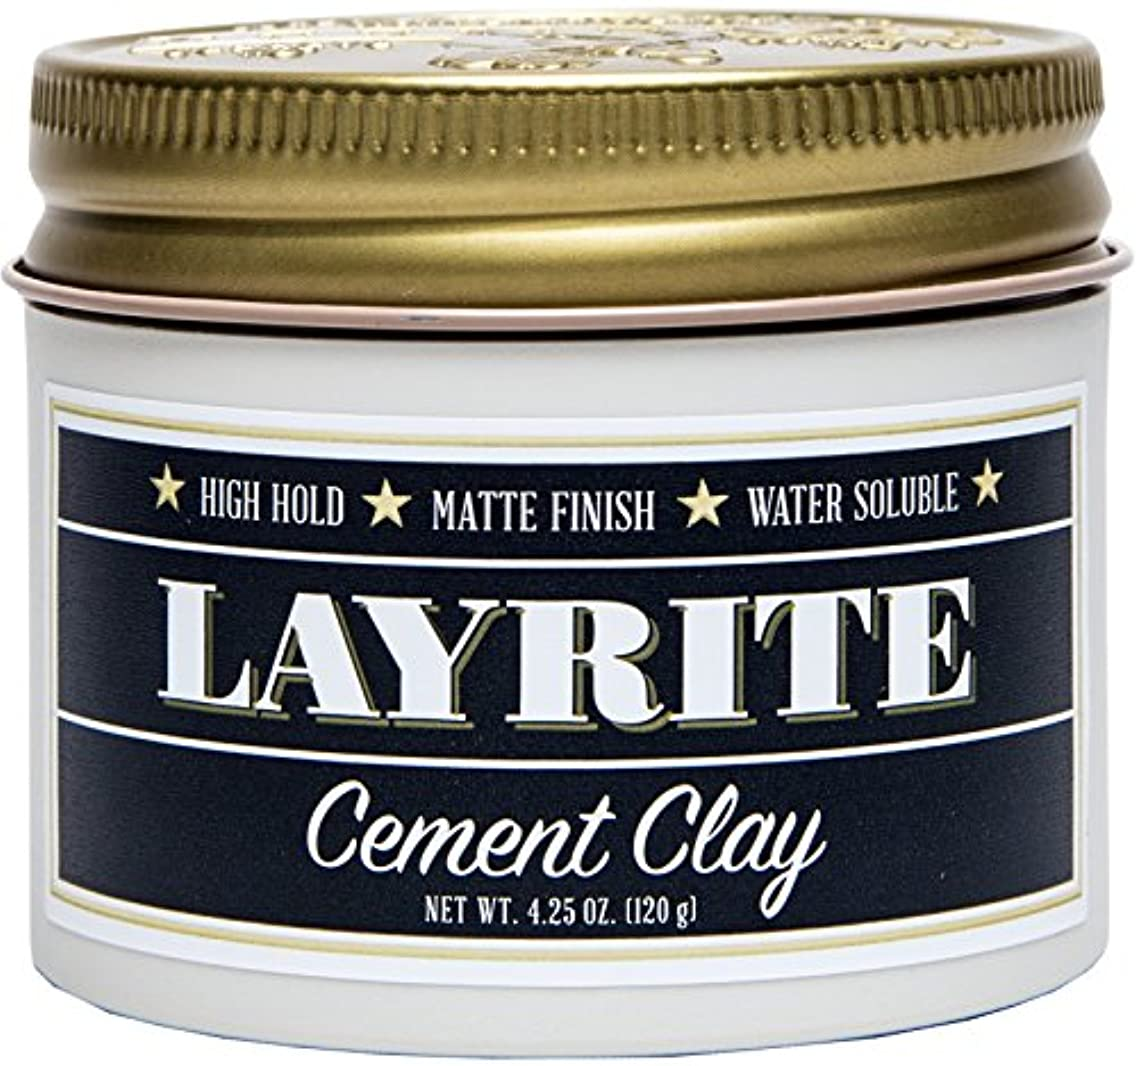 進化するラグクレタLayrite Cement Clay (High Hold, Matte Finish, Water Soluble) 120g/4.25oz並行輸入品